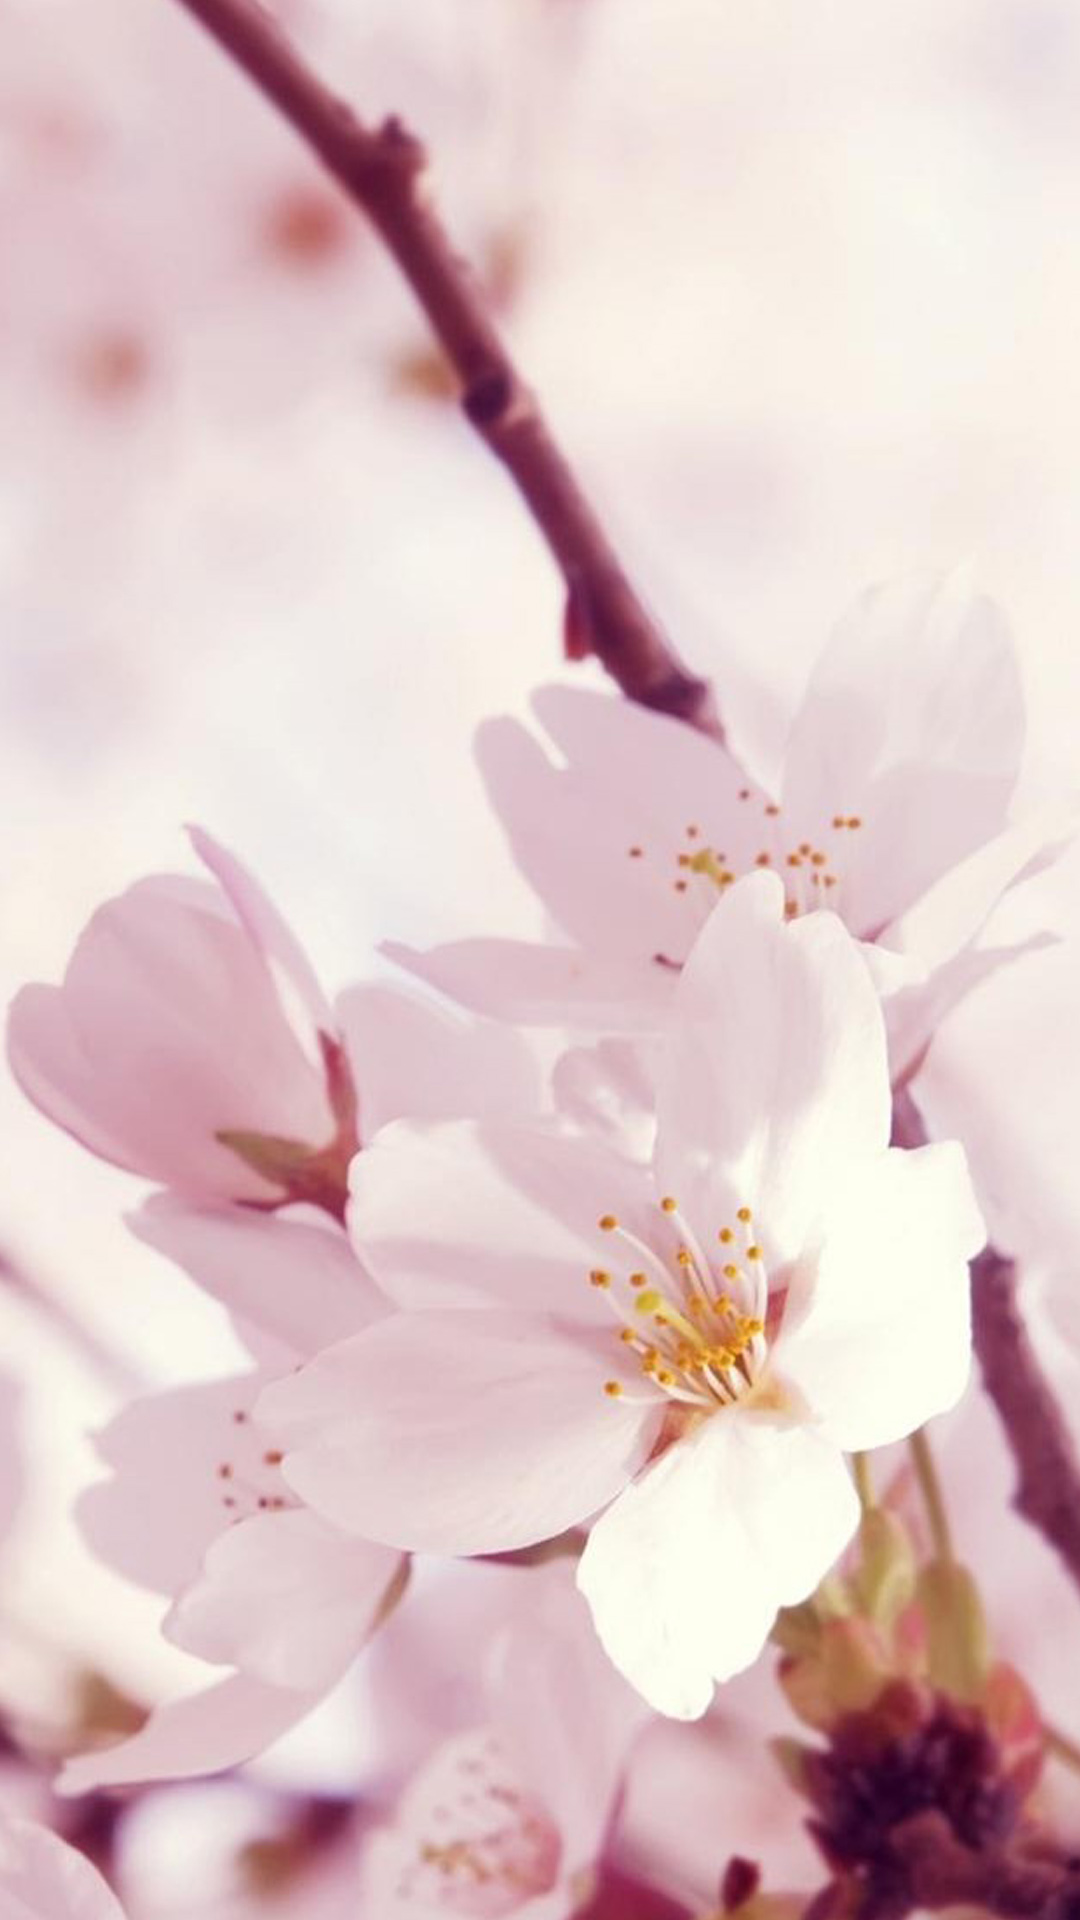 Beautiful-Chinese-Asia-flowers-Sakura-Plum-Blossoms-Lotus-iPhone-collection-mobile-wallpaper-wp3402989